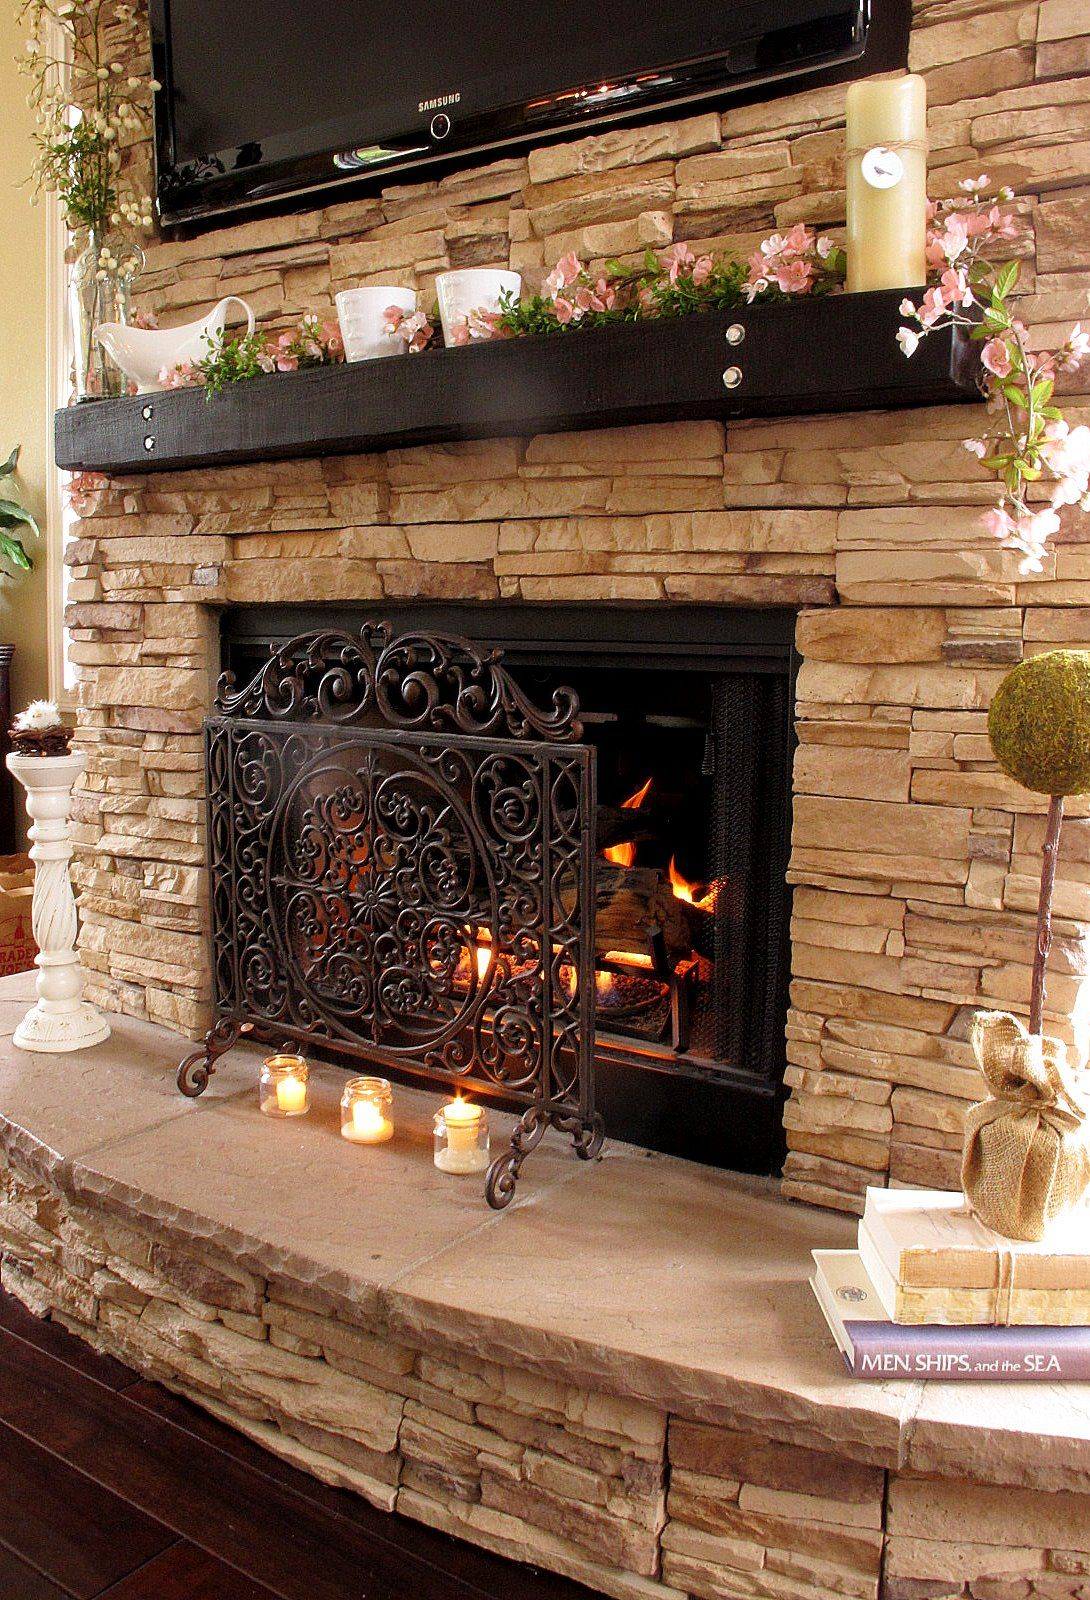 Stupendous Stone Faced Fireplace Outdoor Stone Fireplace Ideas Diy Interior Design Ideas Inesswwsoteloinfo